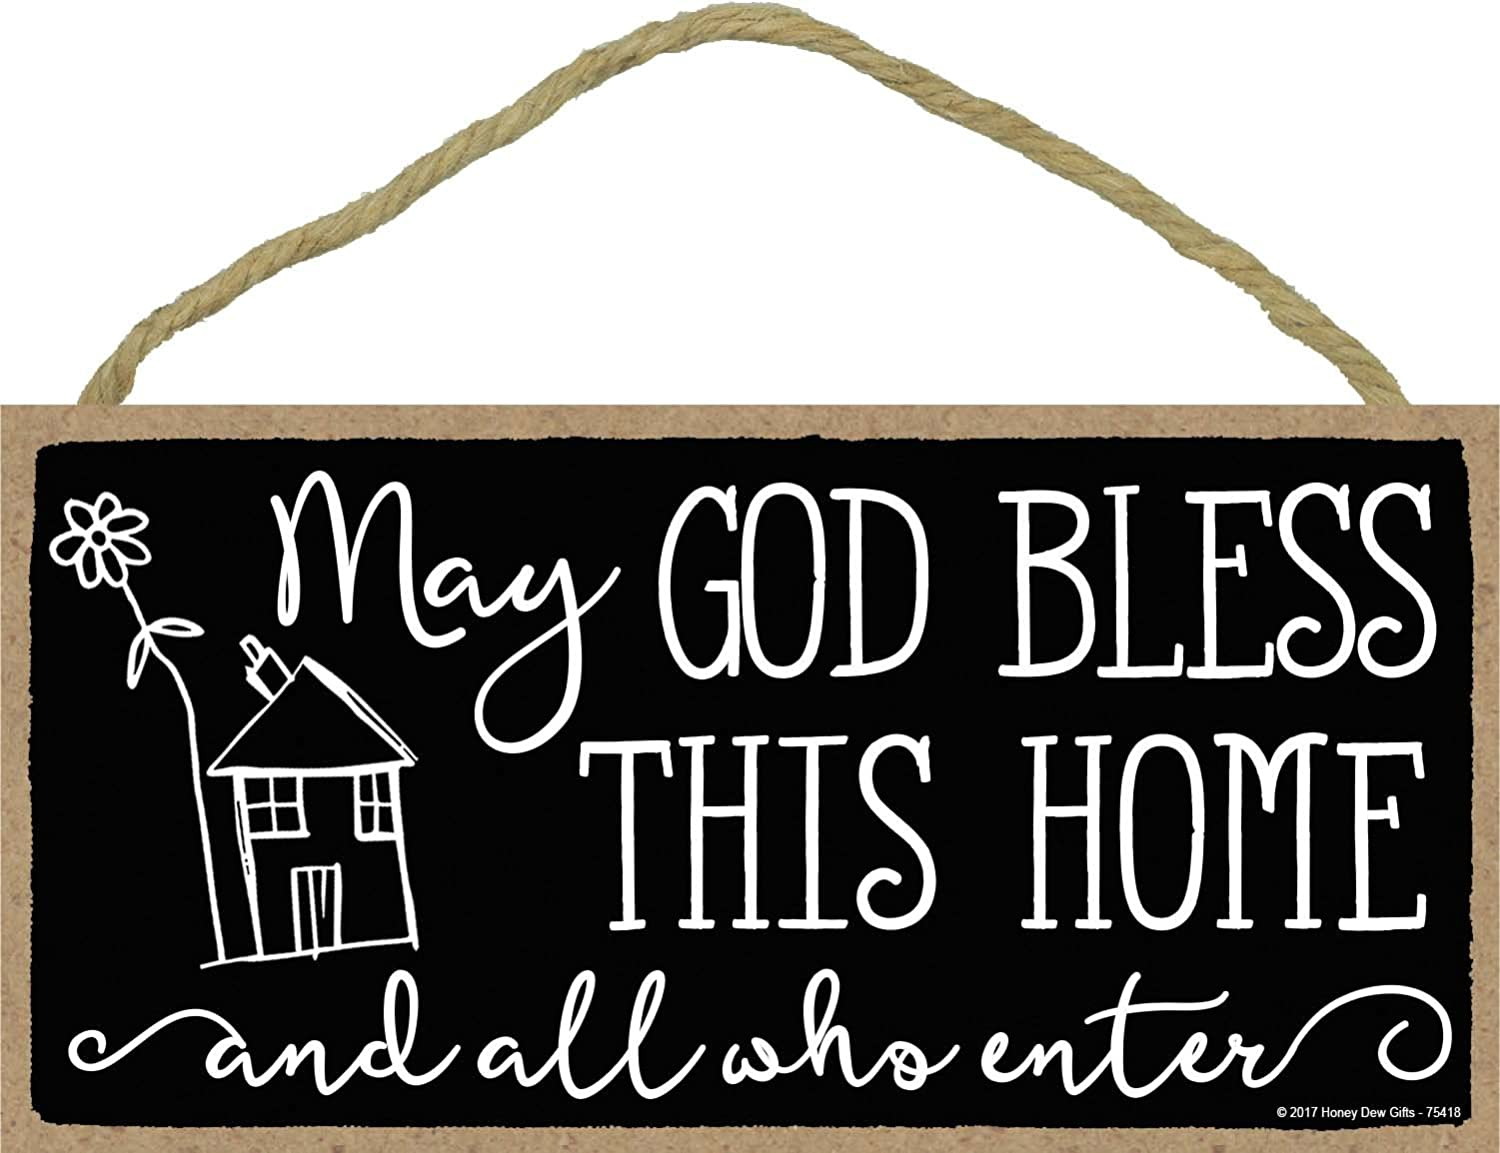 May God Bless This House and All Who Enter - 5 x 10 inch Hanging, Wall Art, Decorative Wood Sign Home Decor